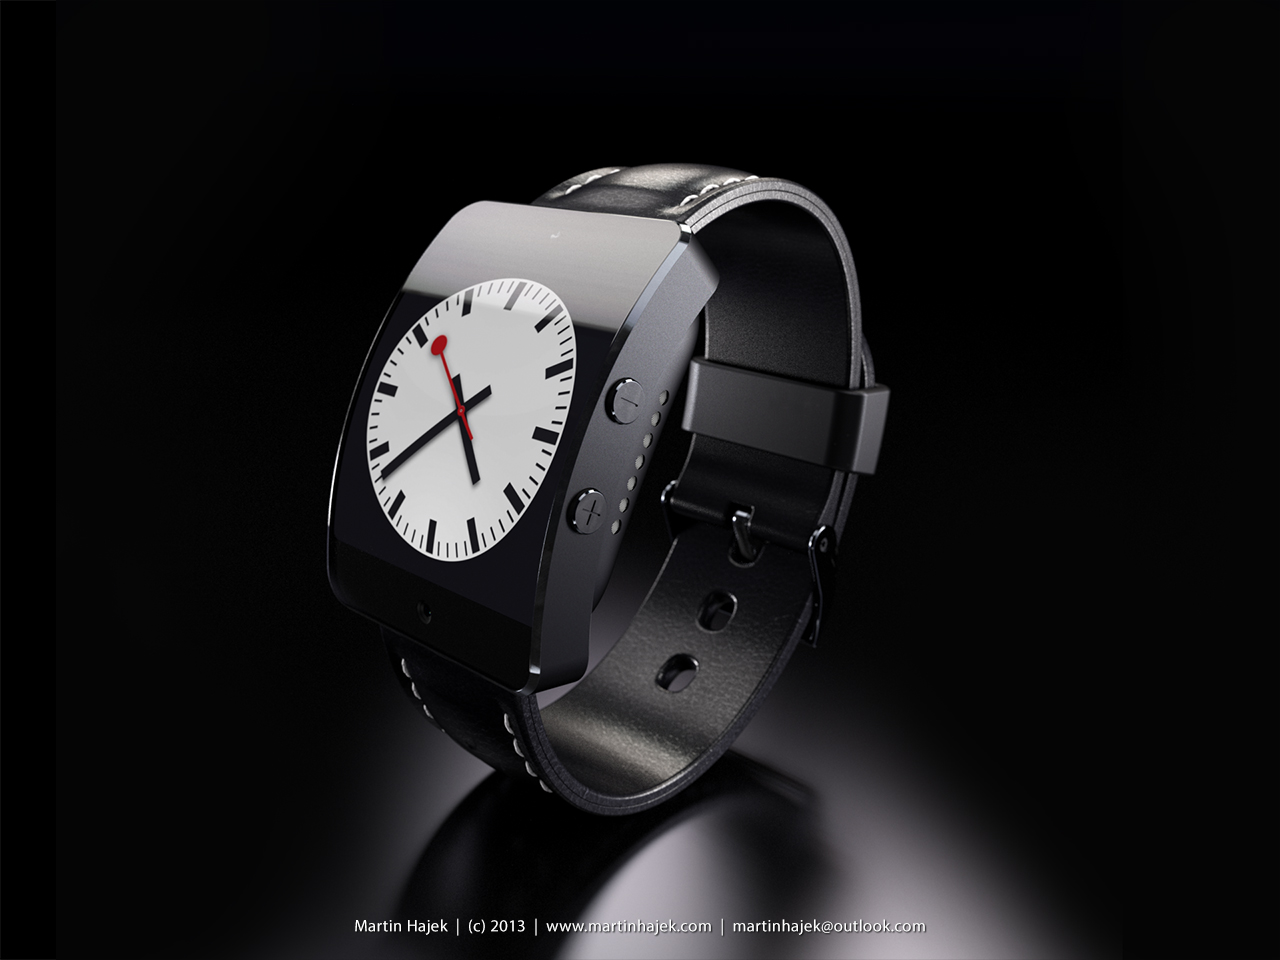 iWatch cocept (Martin Hajek, MacUser April 2013 issue 011)